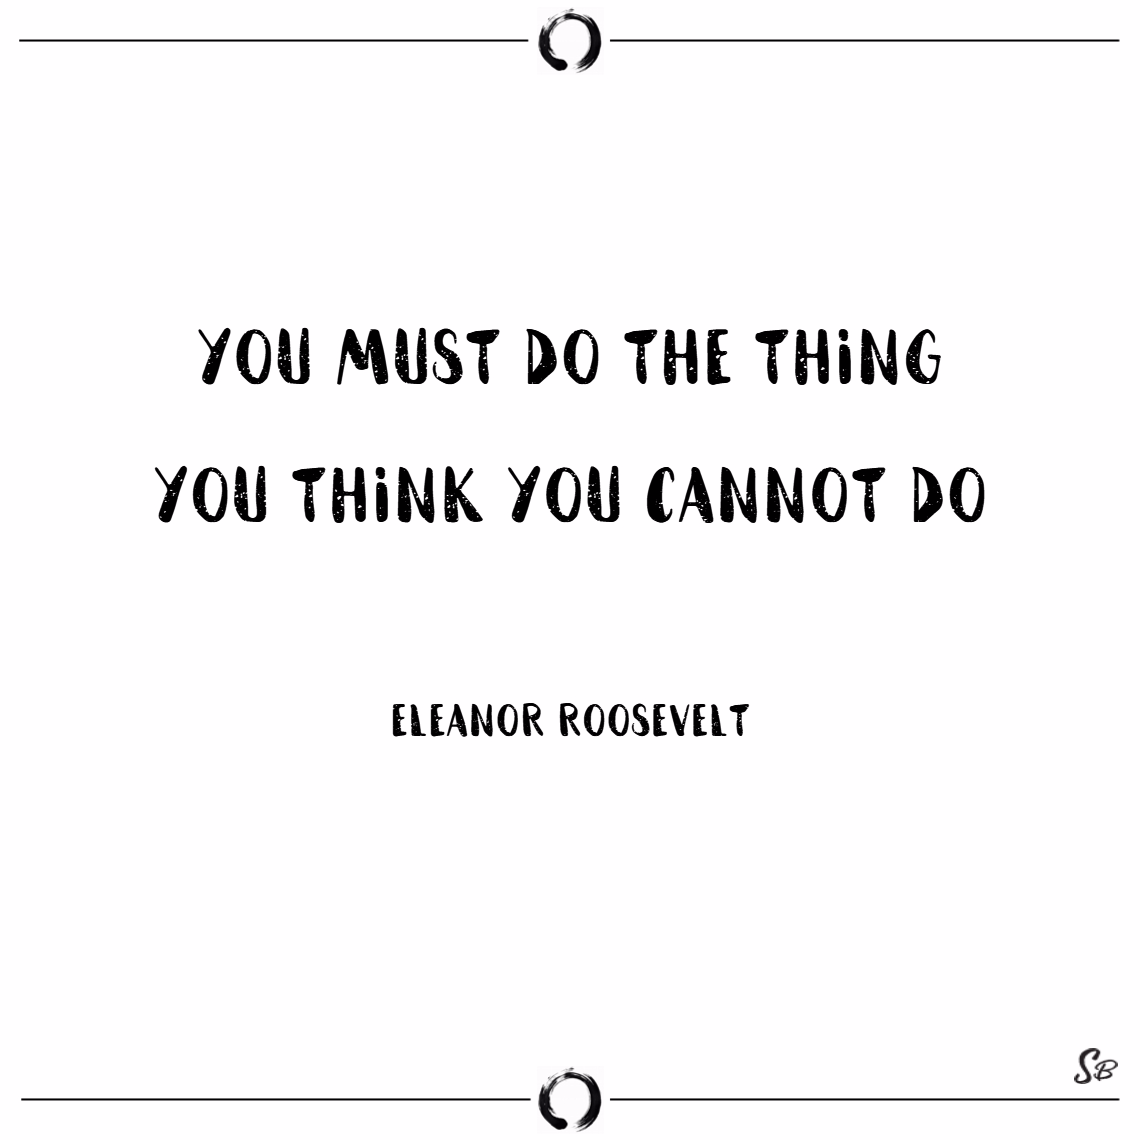 You must do the thing you think you cannot do. – eleanor roosevelt words of encouragement